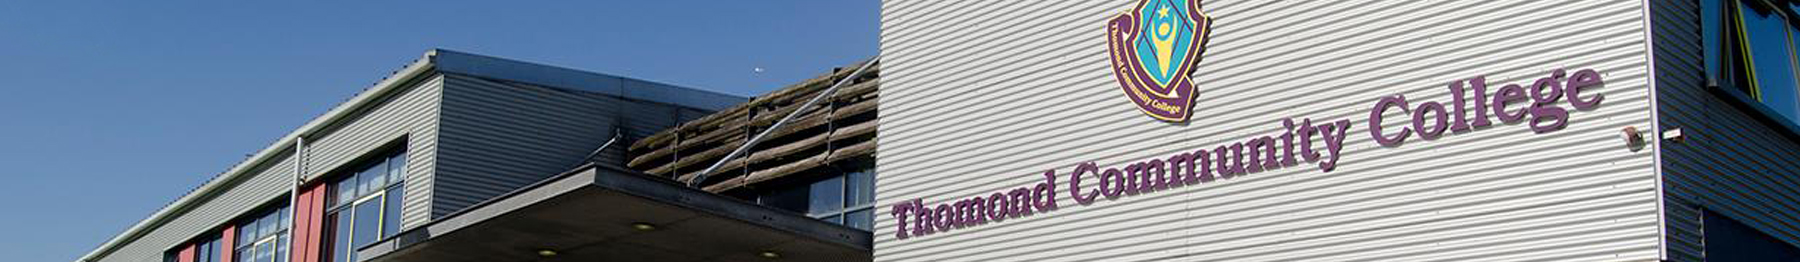 Thomond Community College